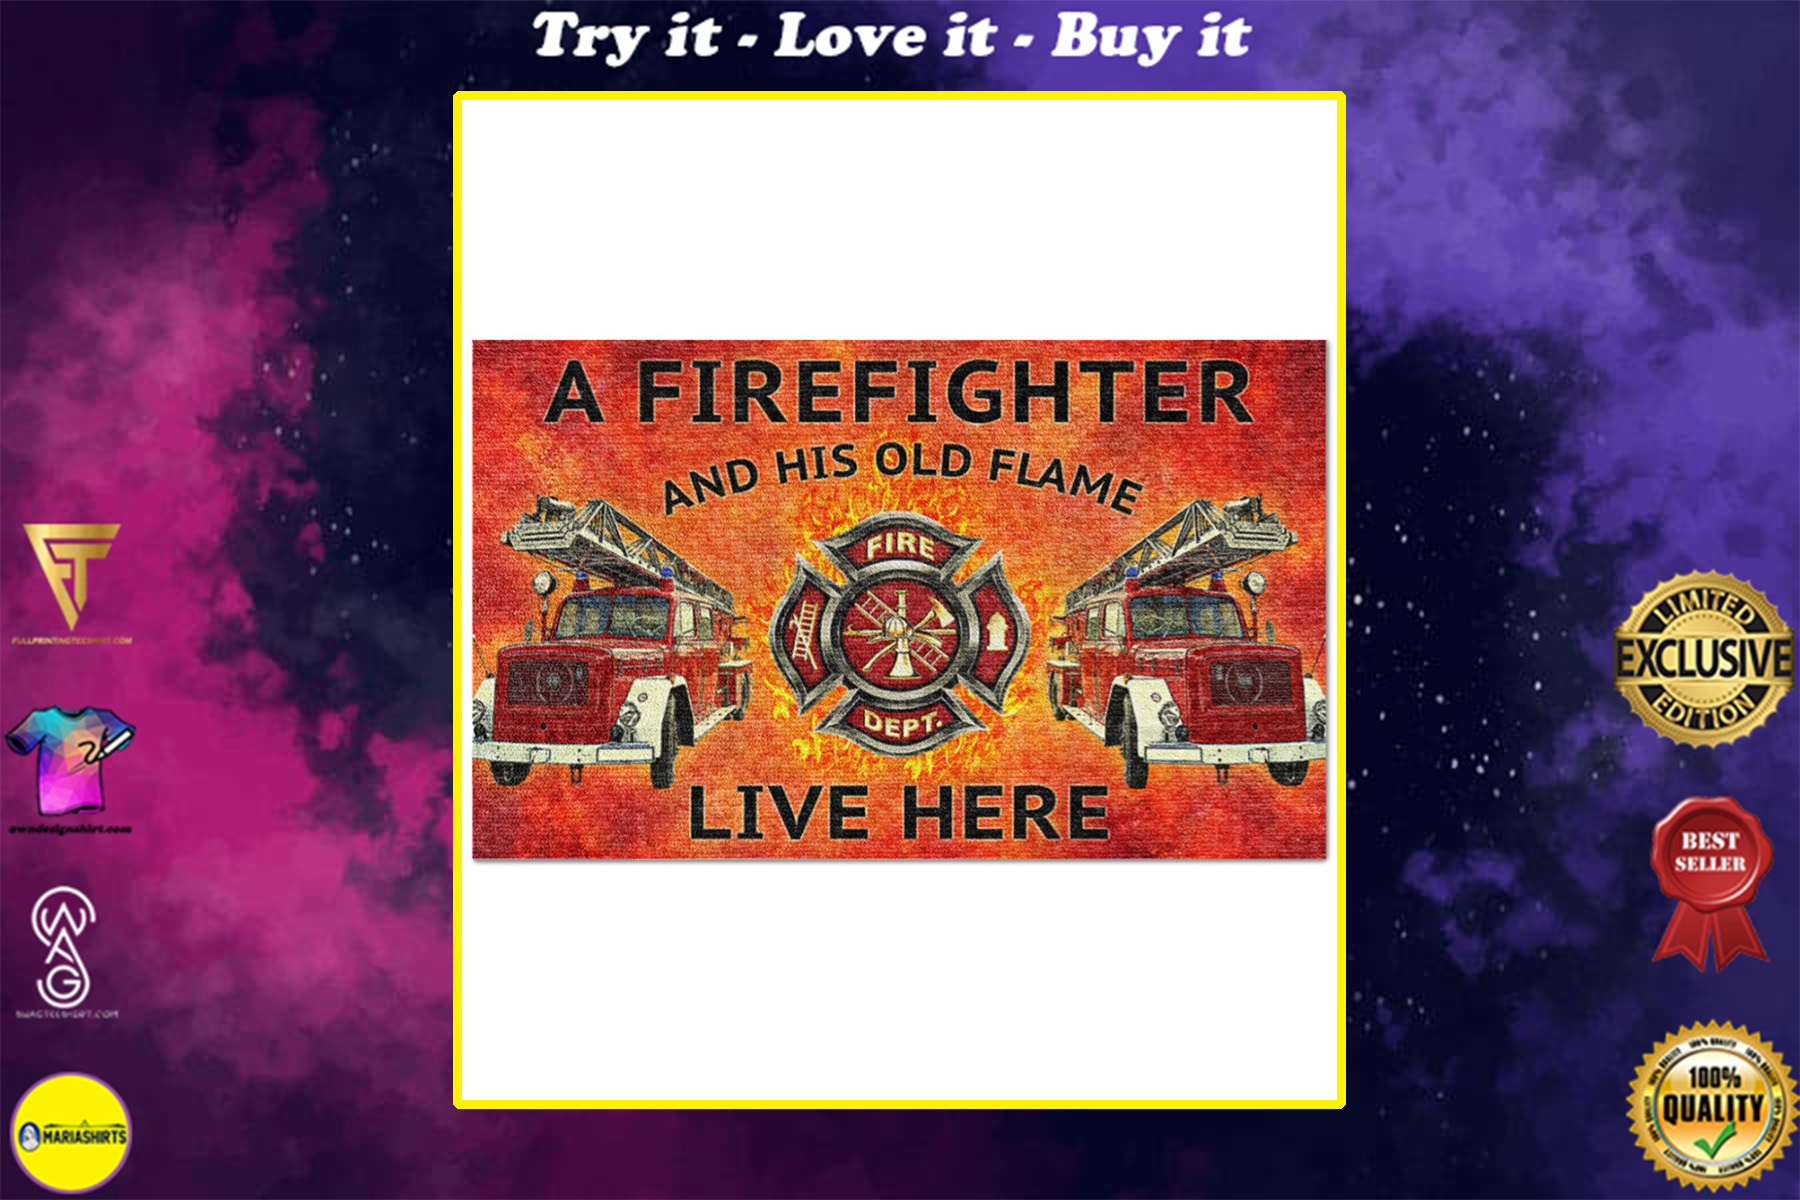 firefighter and his old flame live here full printing doormat